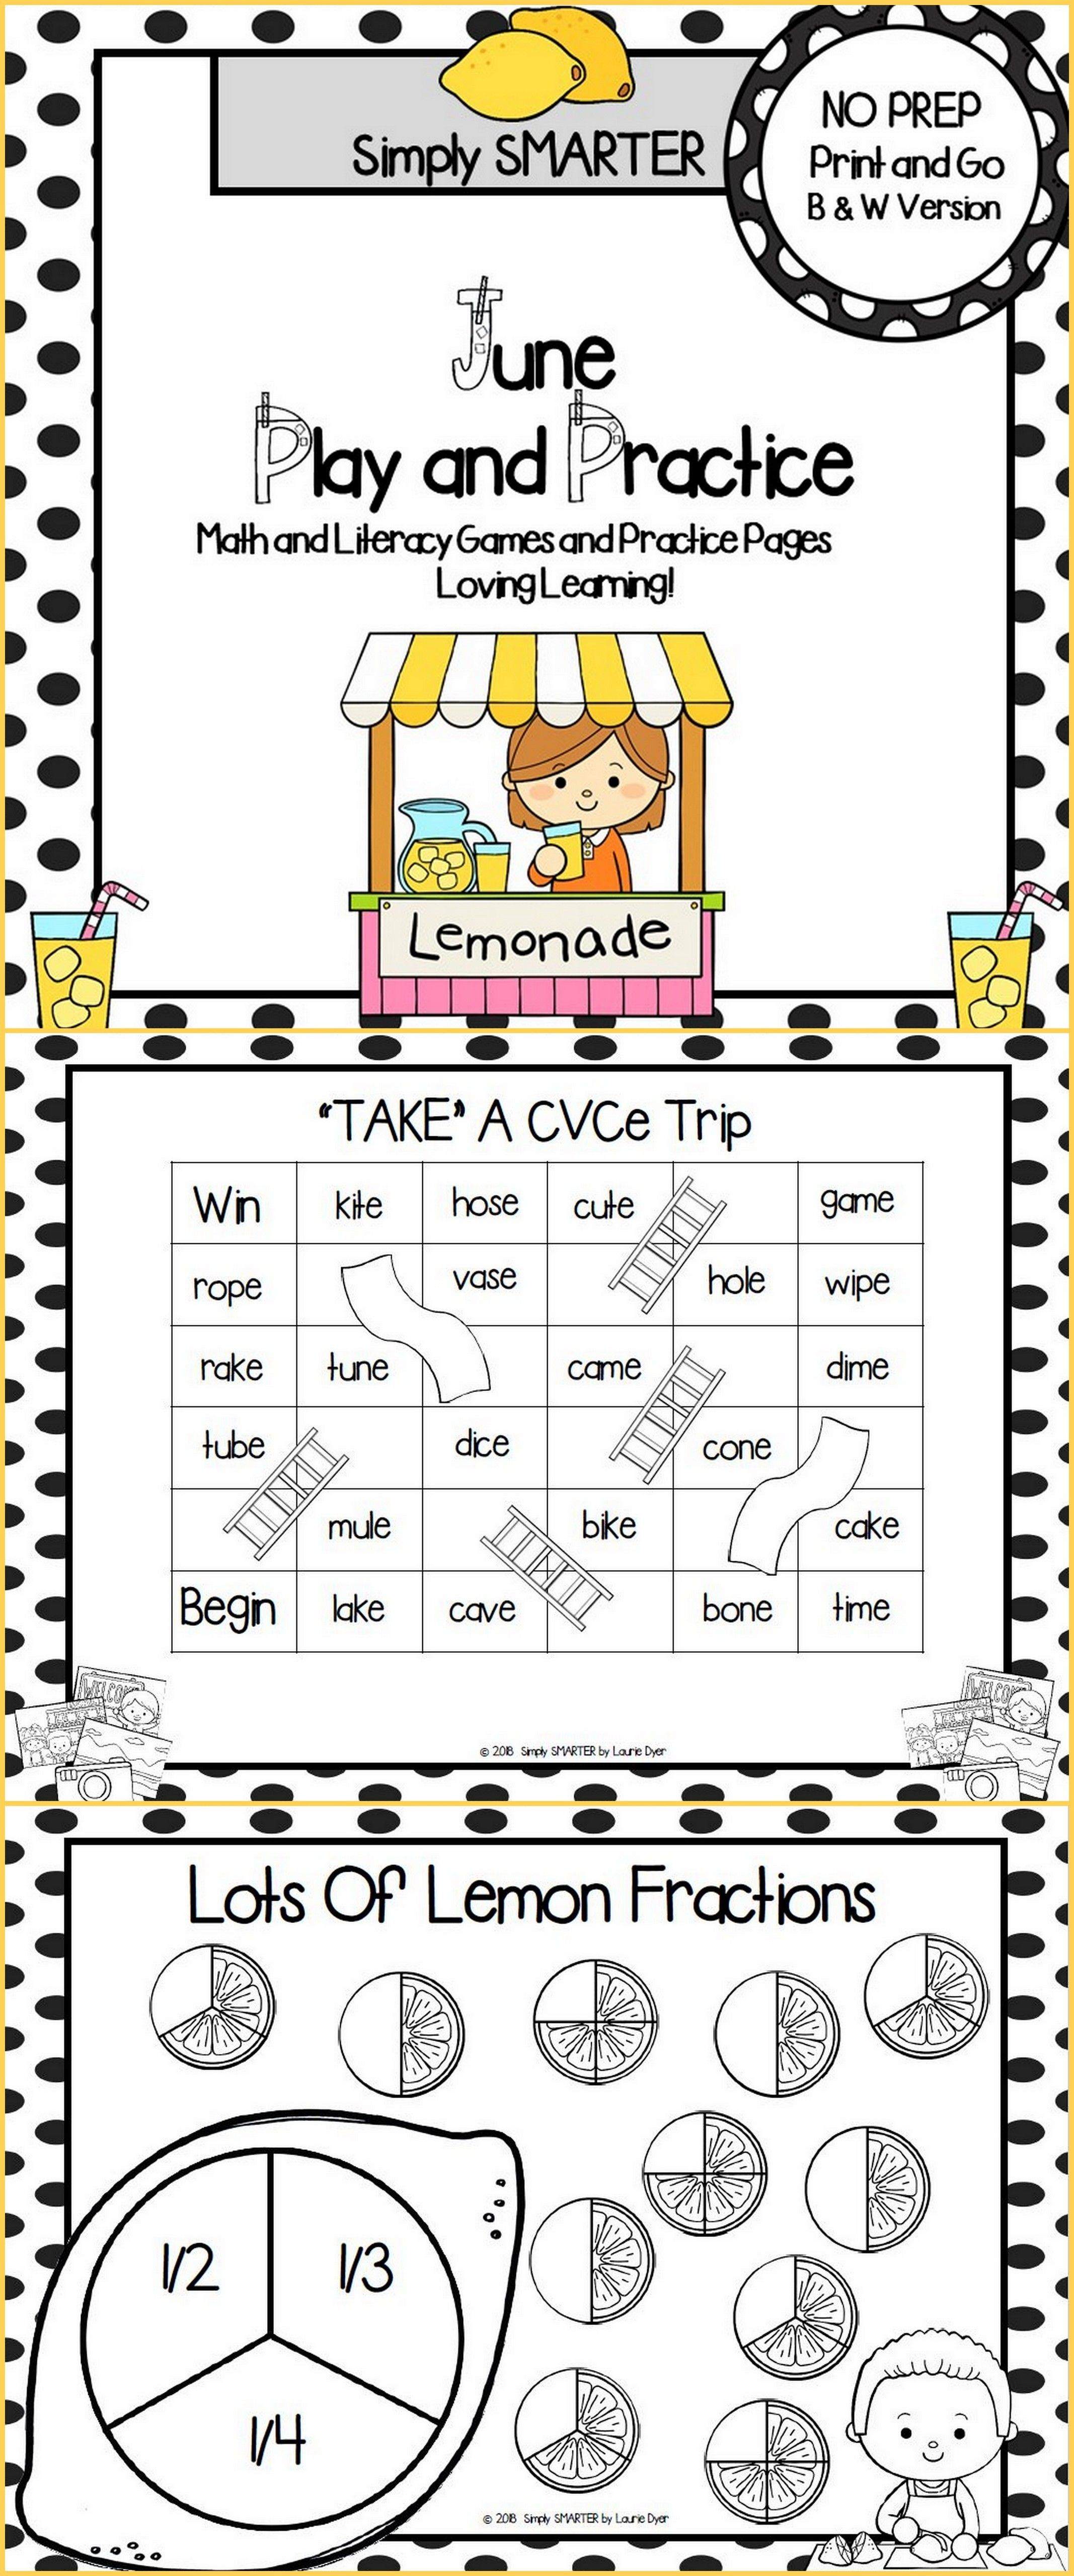 June Play And Practice No Prep Math And Literacy Games And Practice Pages